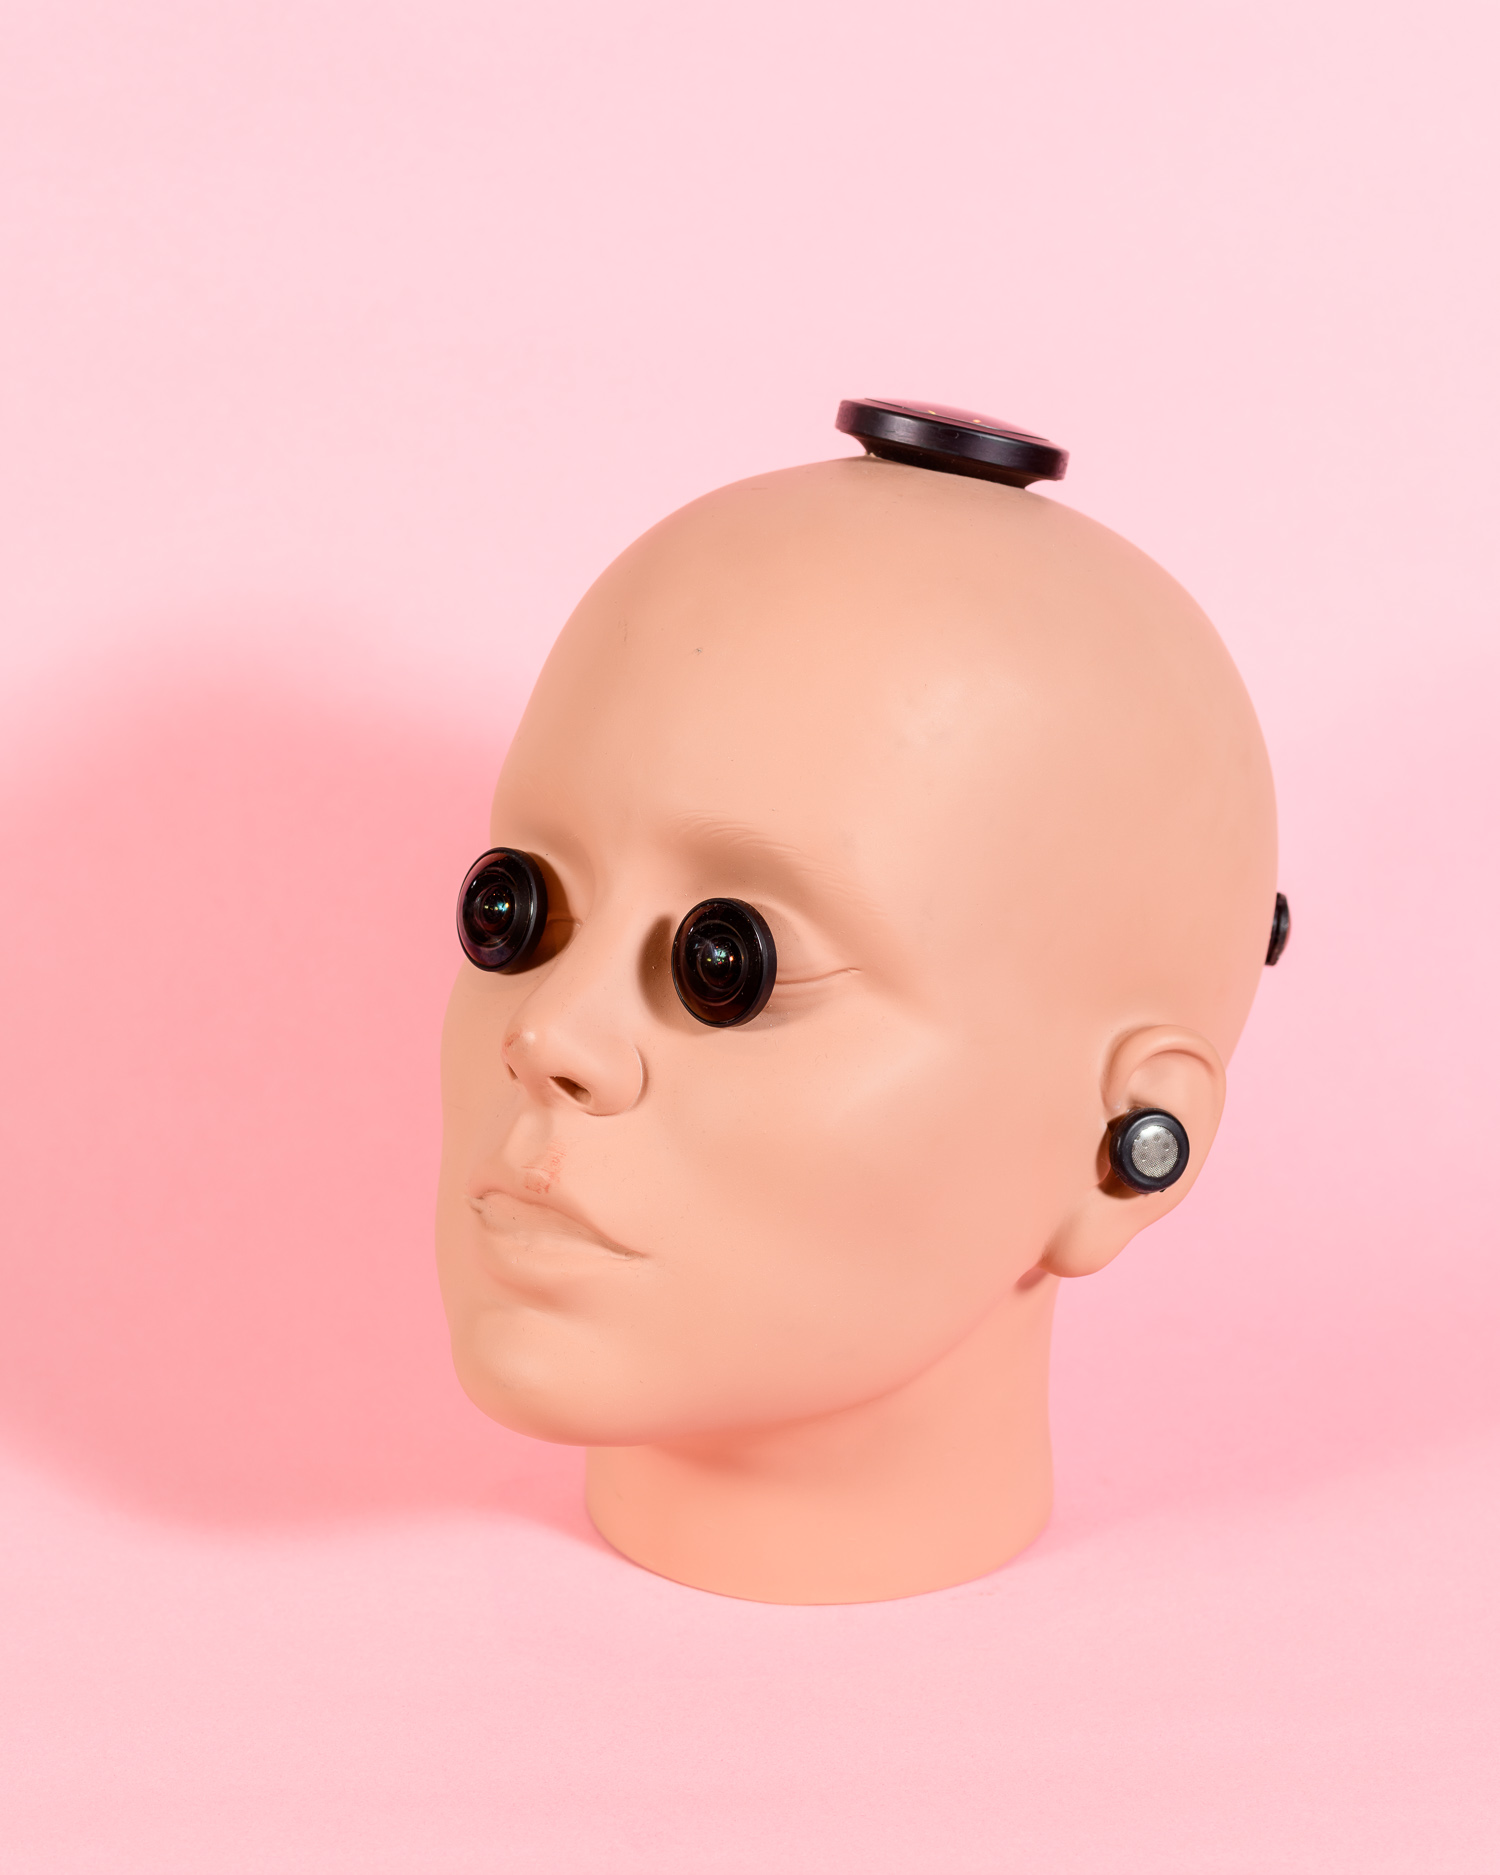 A prototype camera head produced by VR Bangers. The cameras and microphones installed in the head are intended to make the experience more natural for the female performers, who have to act directly to the camera for POV filming